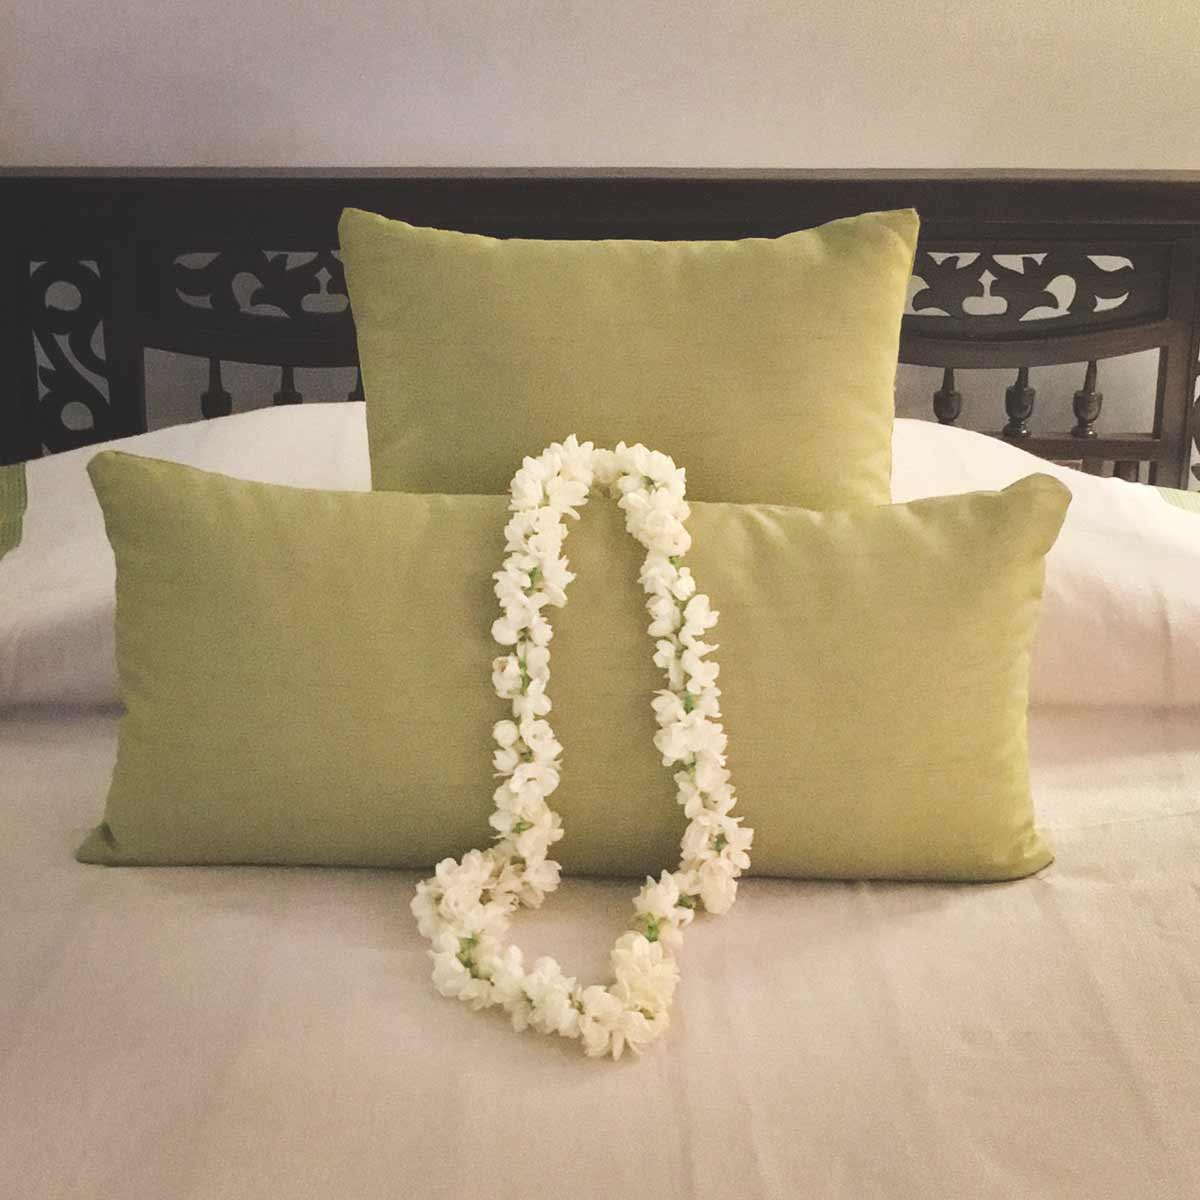 white flower garland on a pillow